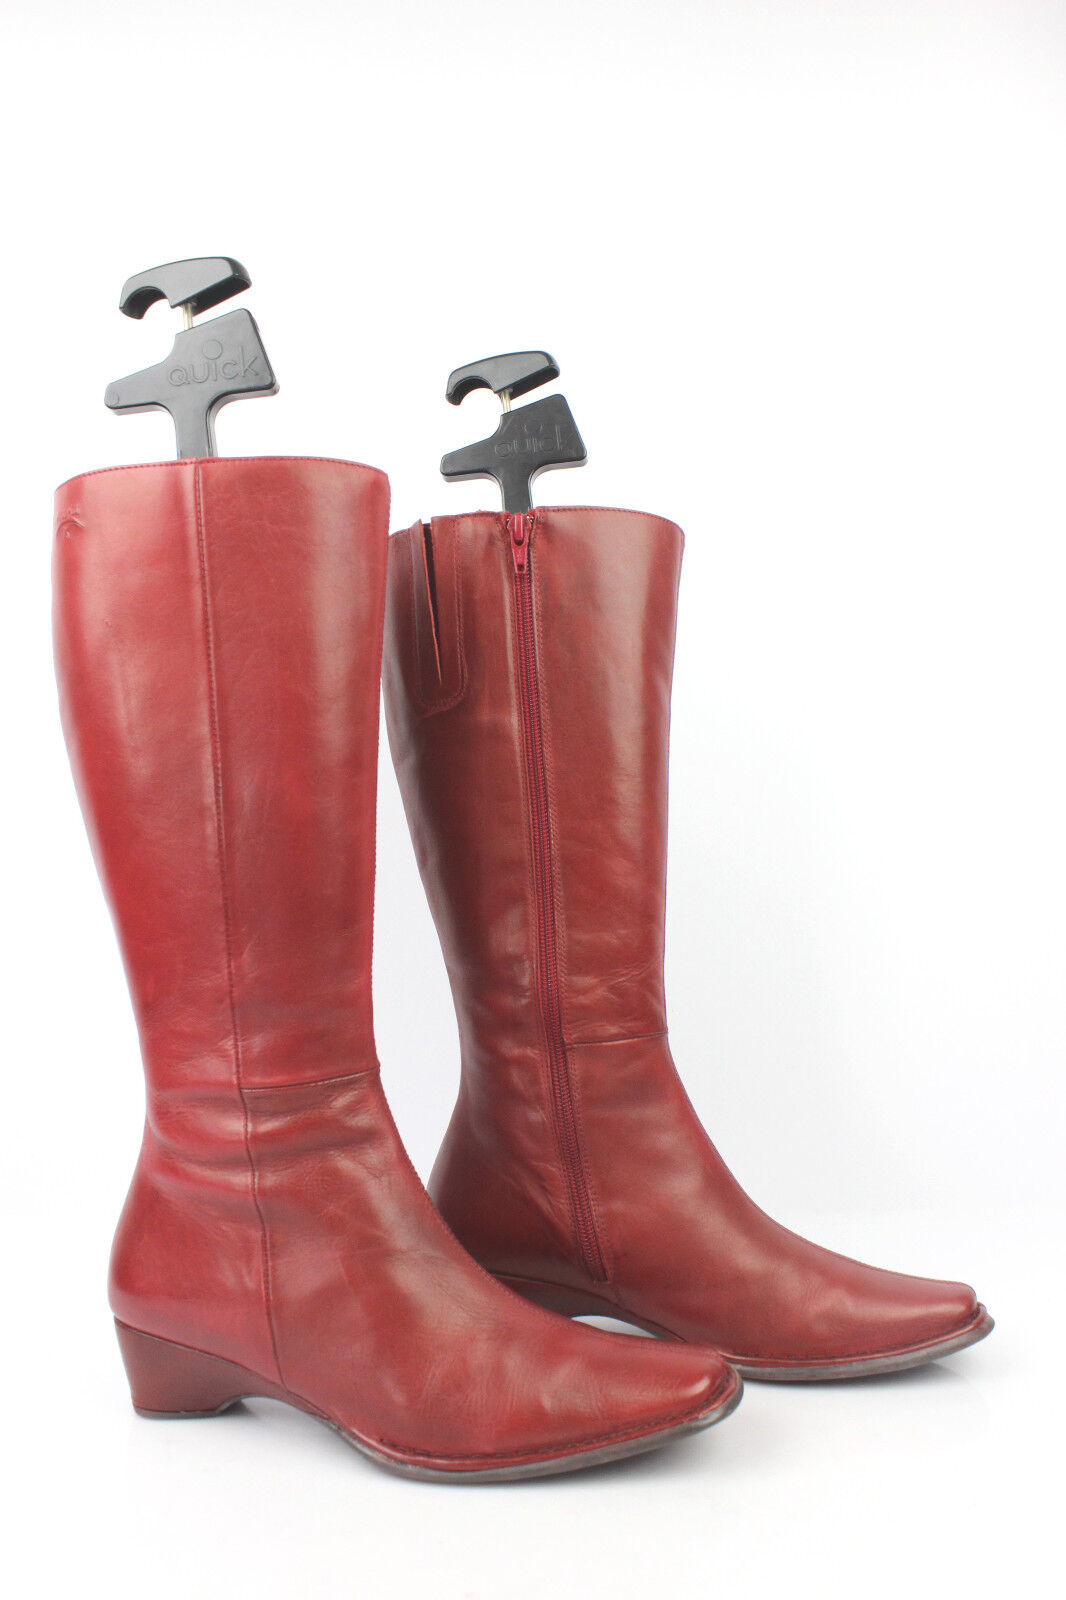 Boots Pikolinos Leather Burgundy Red T 37 Very Good Condition